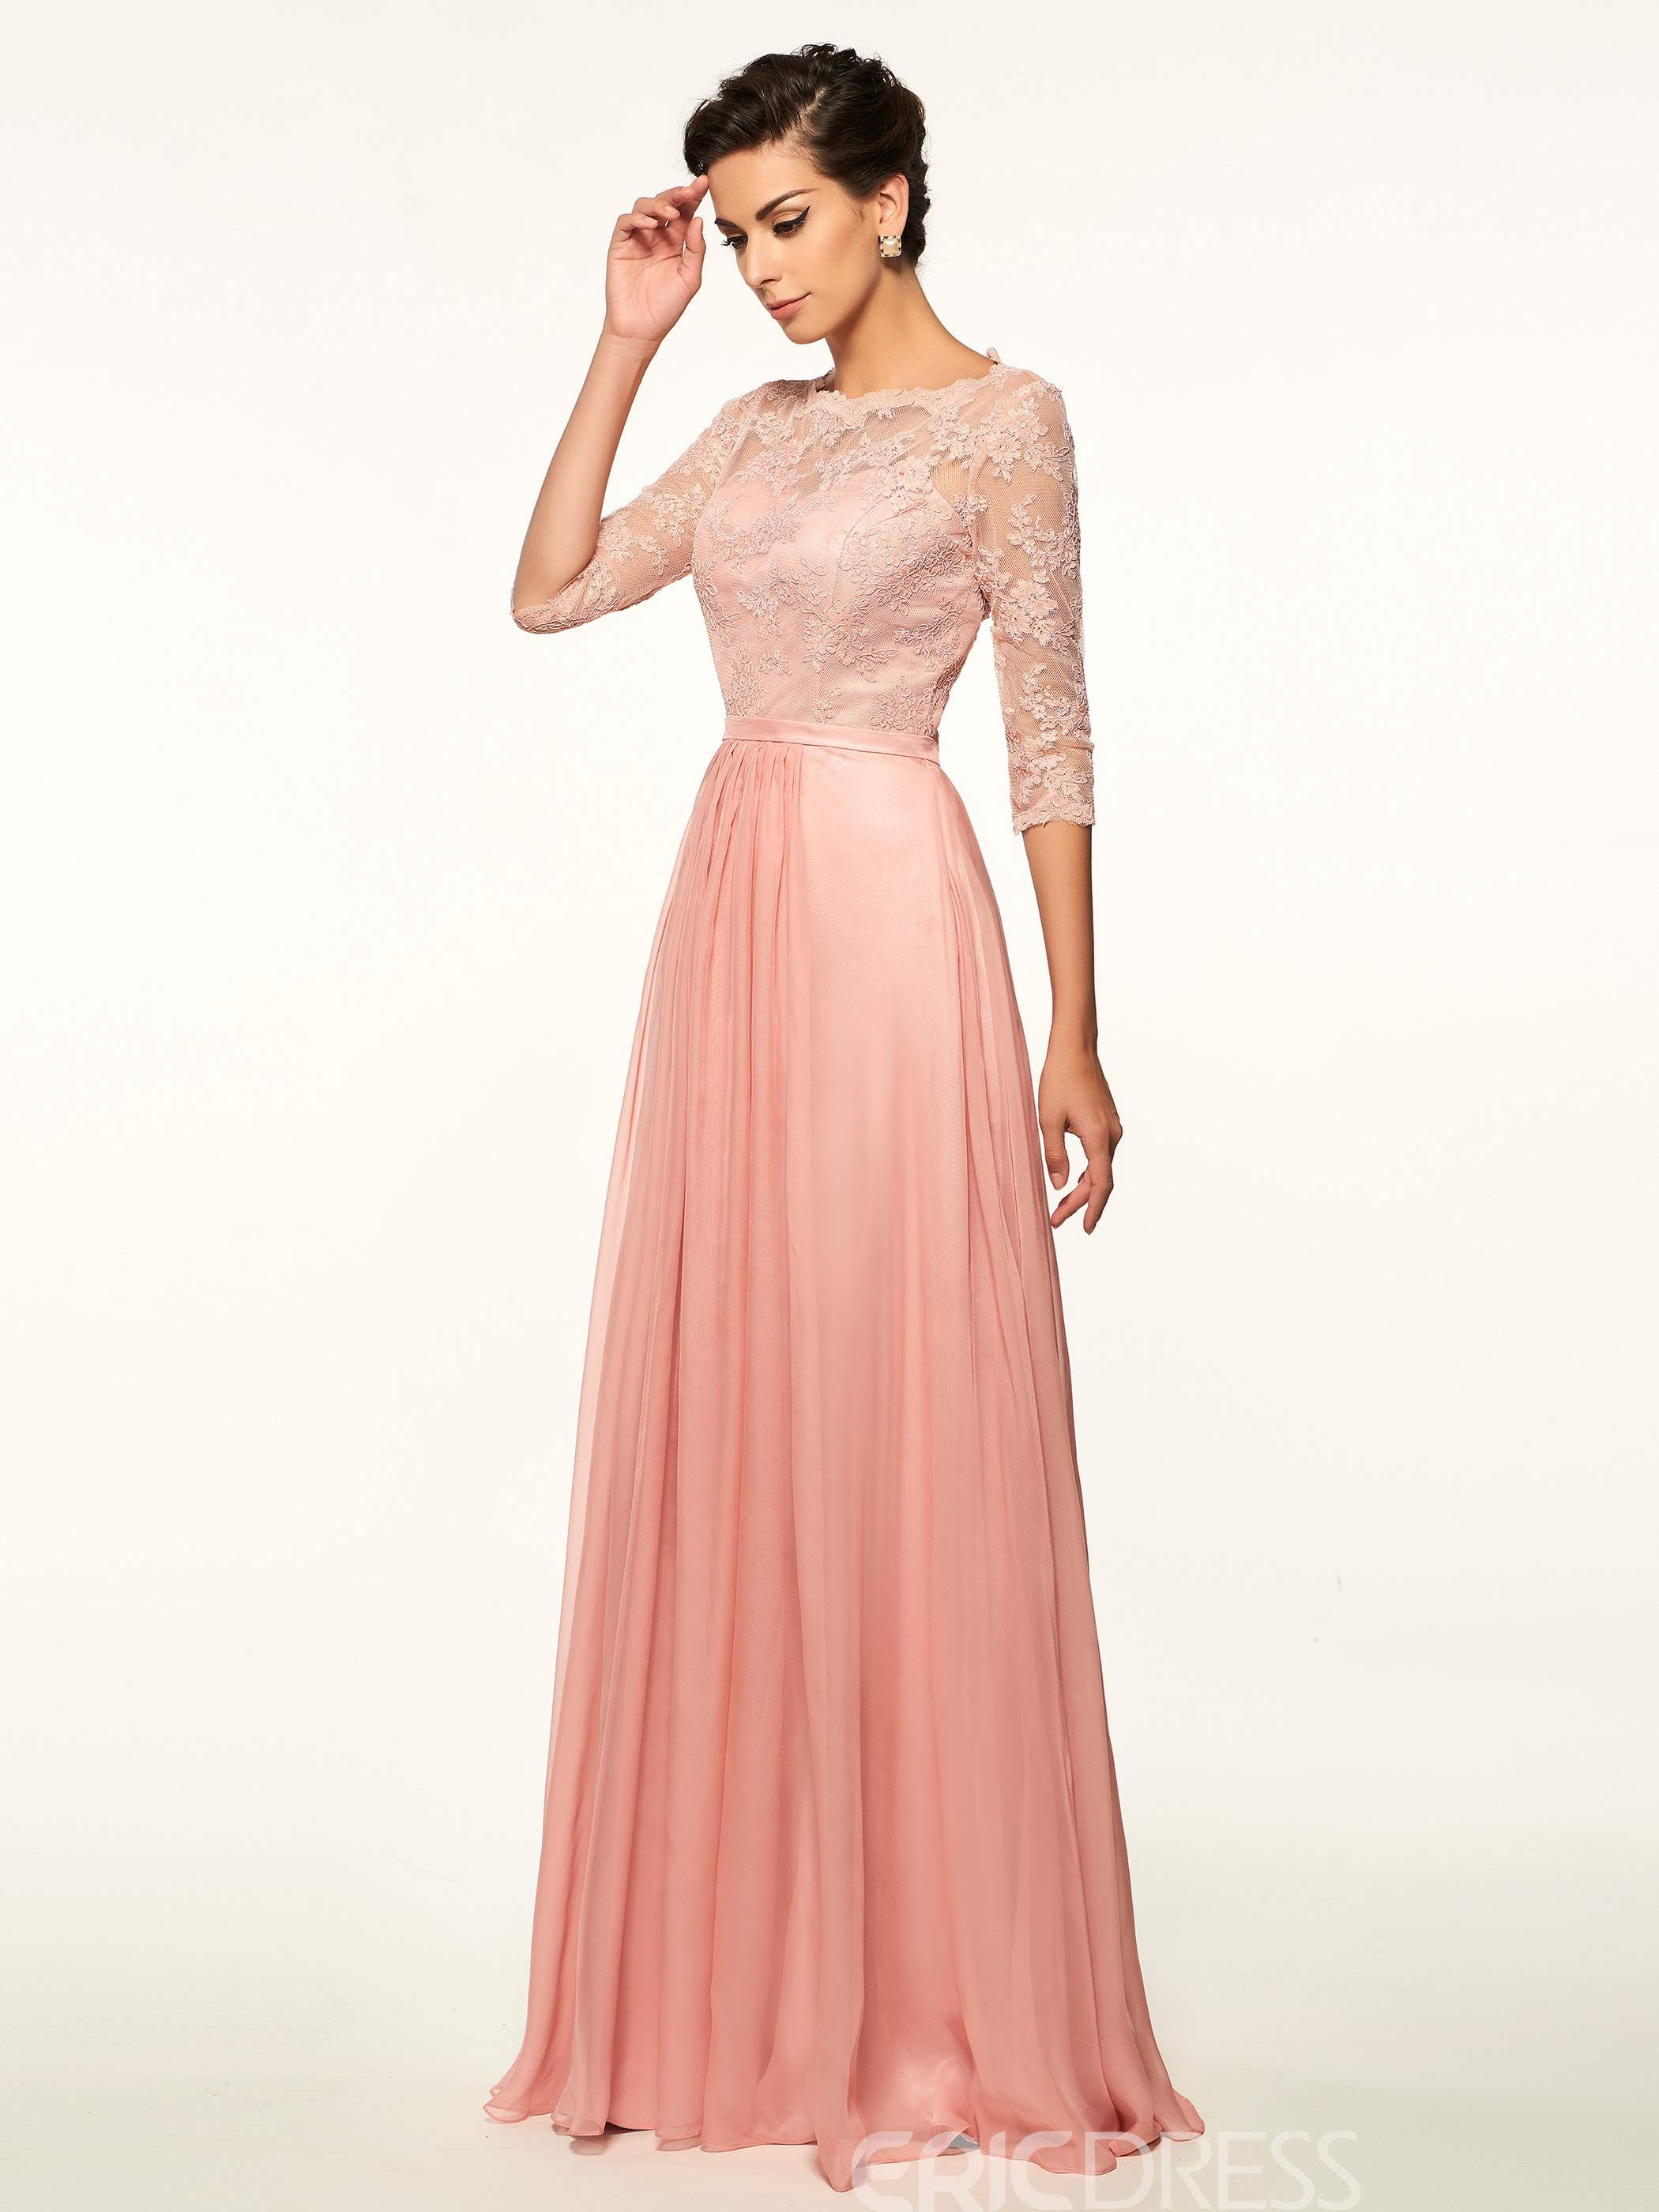 Ericdress Lace Half Sleeves A Line Long Scoop Mother Of The Bride Dress